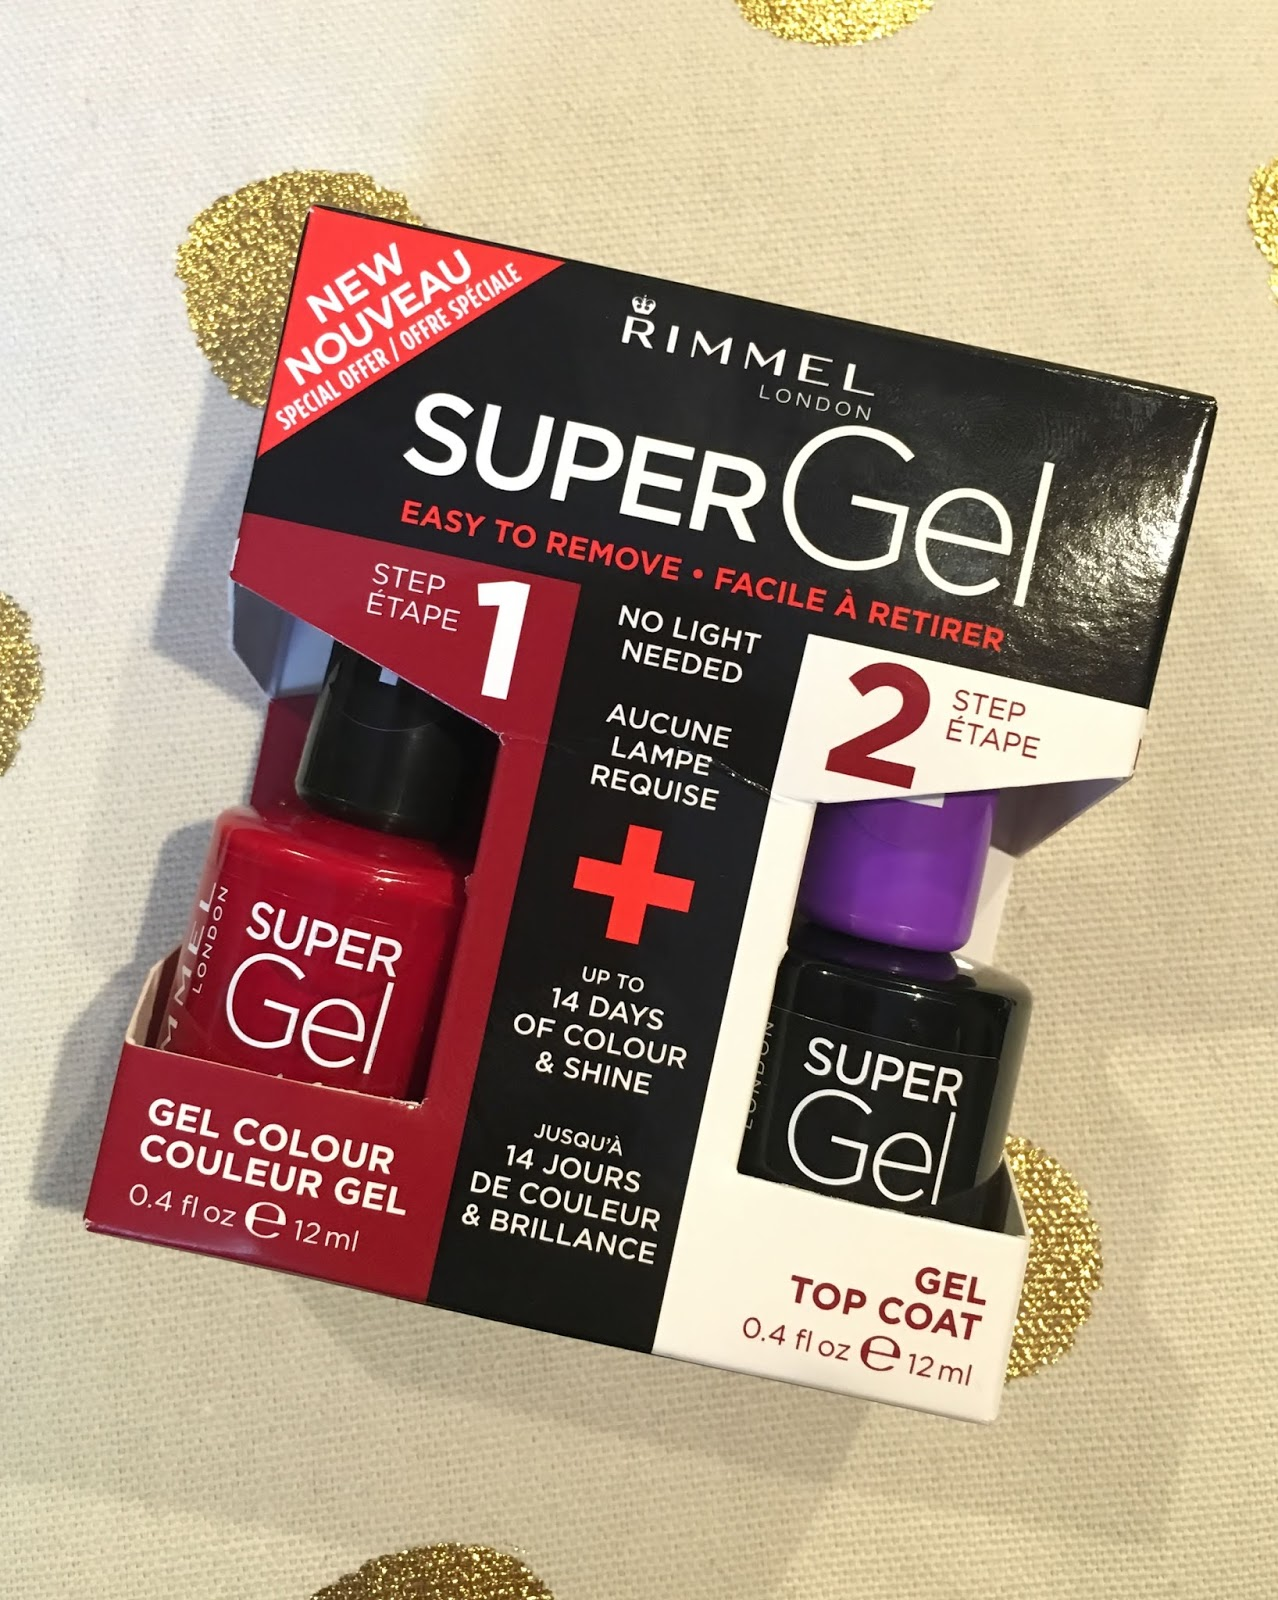 I was recently sent a Rimmel Super Gel duo pack* comprising gel nail colour and gel top coat, and I honestly couldn't be happier with the shade I got.